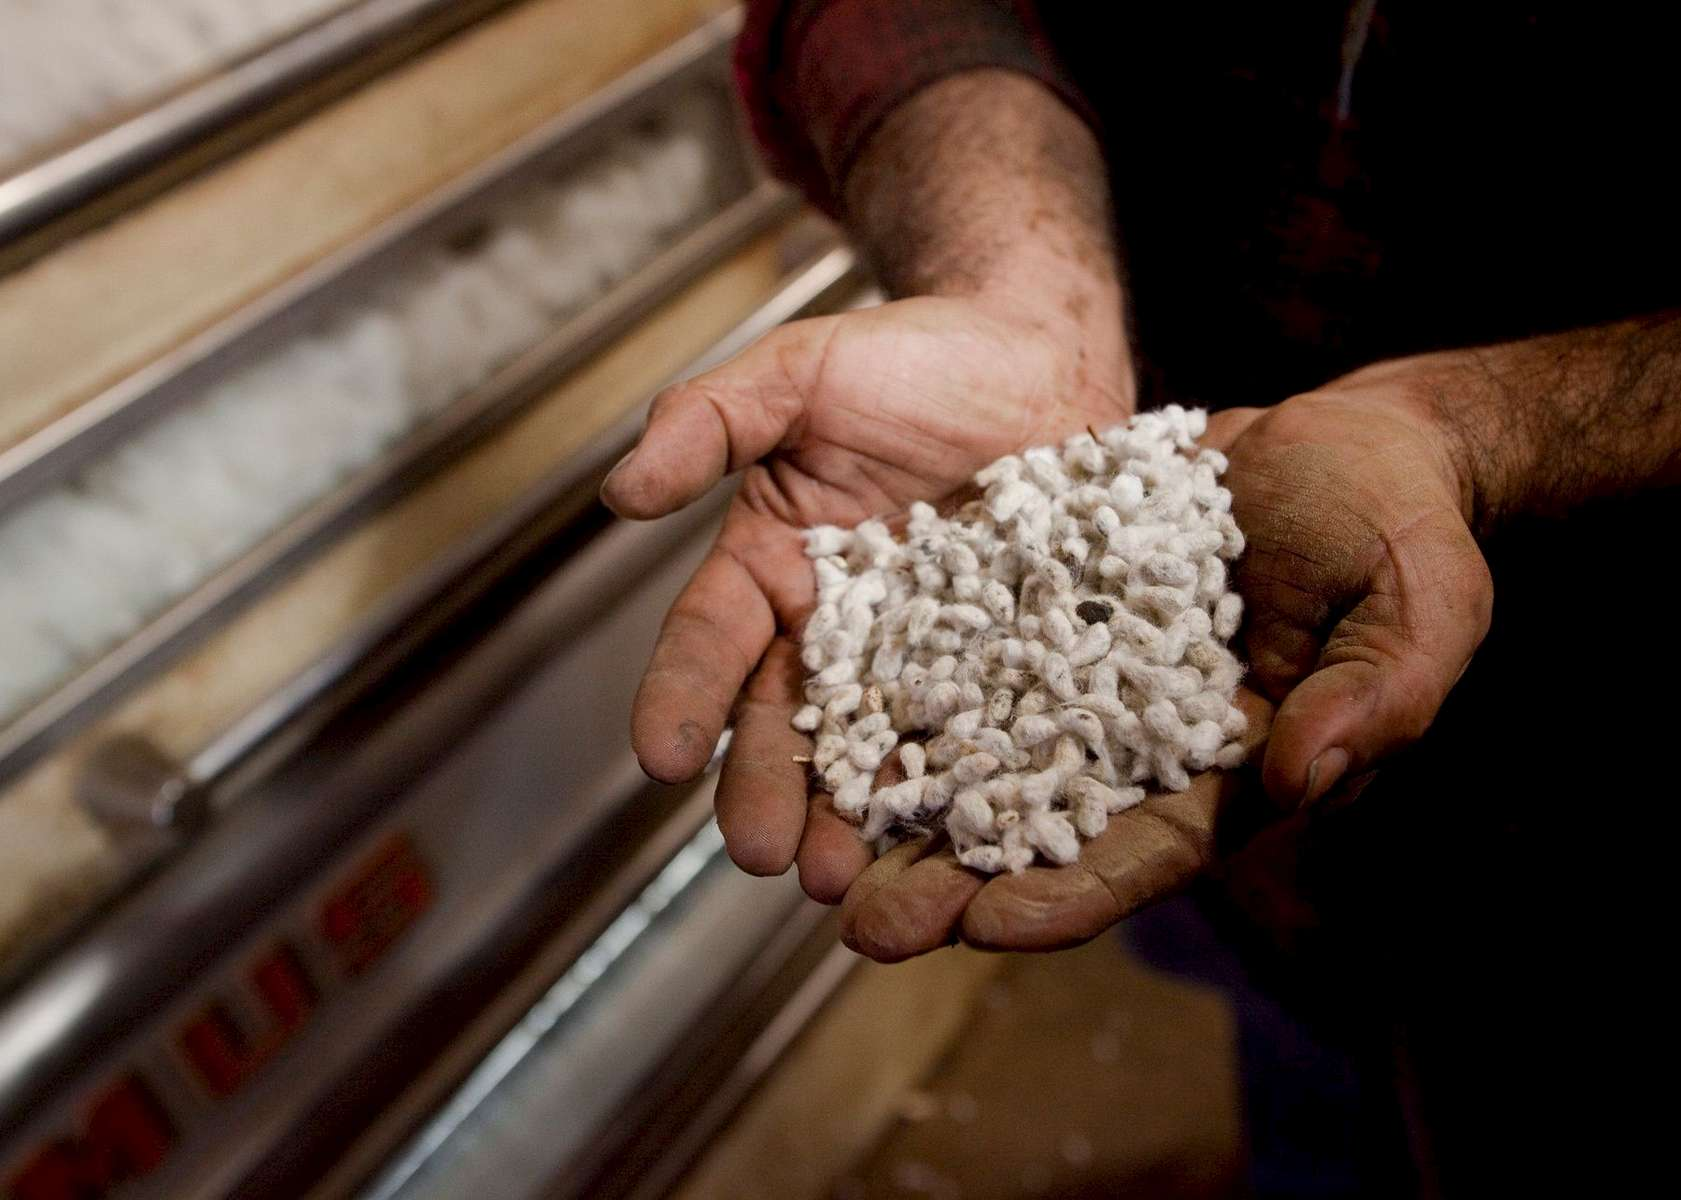 Gin operator Robert Espino of Weslaco, Texas, inspects cotton seeds as they are ginned from cotton at the Minturn Cotton Company in Minturn, South Carolina November 27, 2012. Cotton seeds are gathered and sold for animal feed and cotton seed oil and defer the costs of the ginning process for area cotton farmers.   REUTERS/Randall Hill (UNITED STATES)